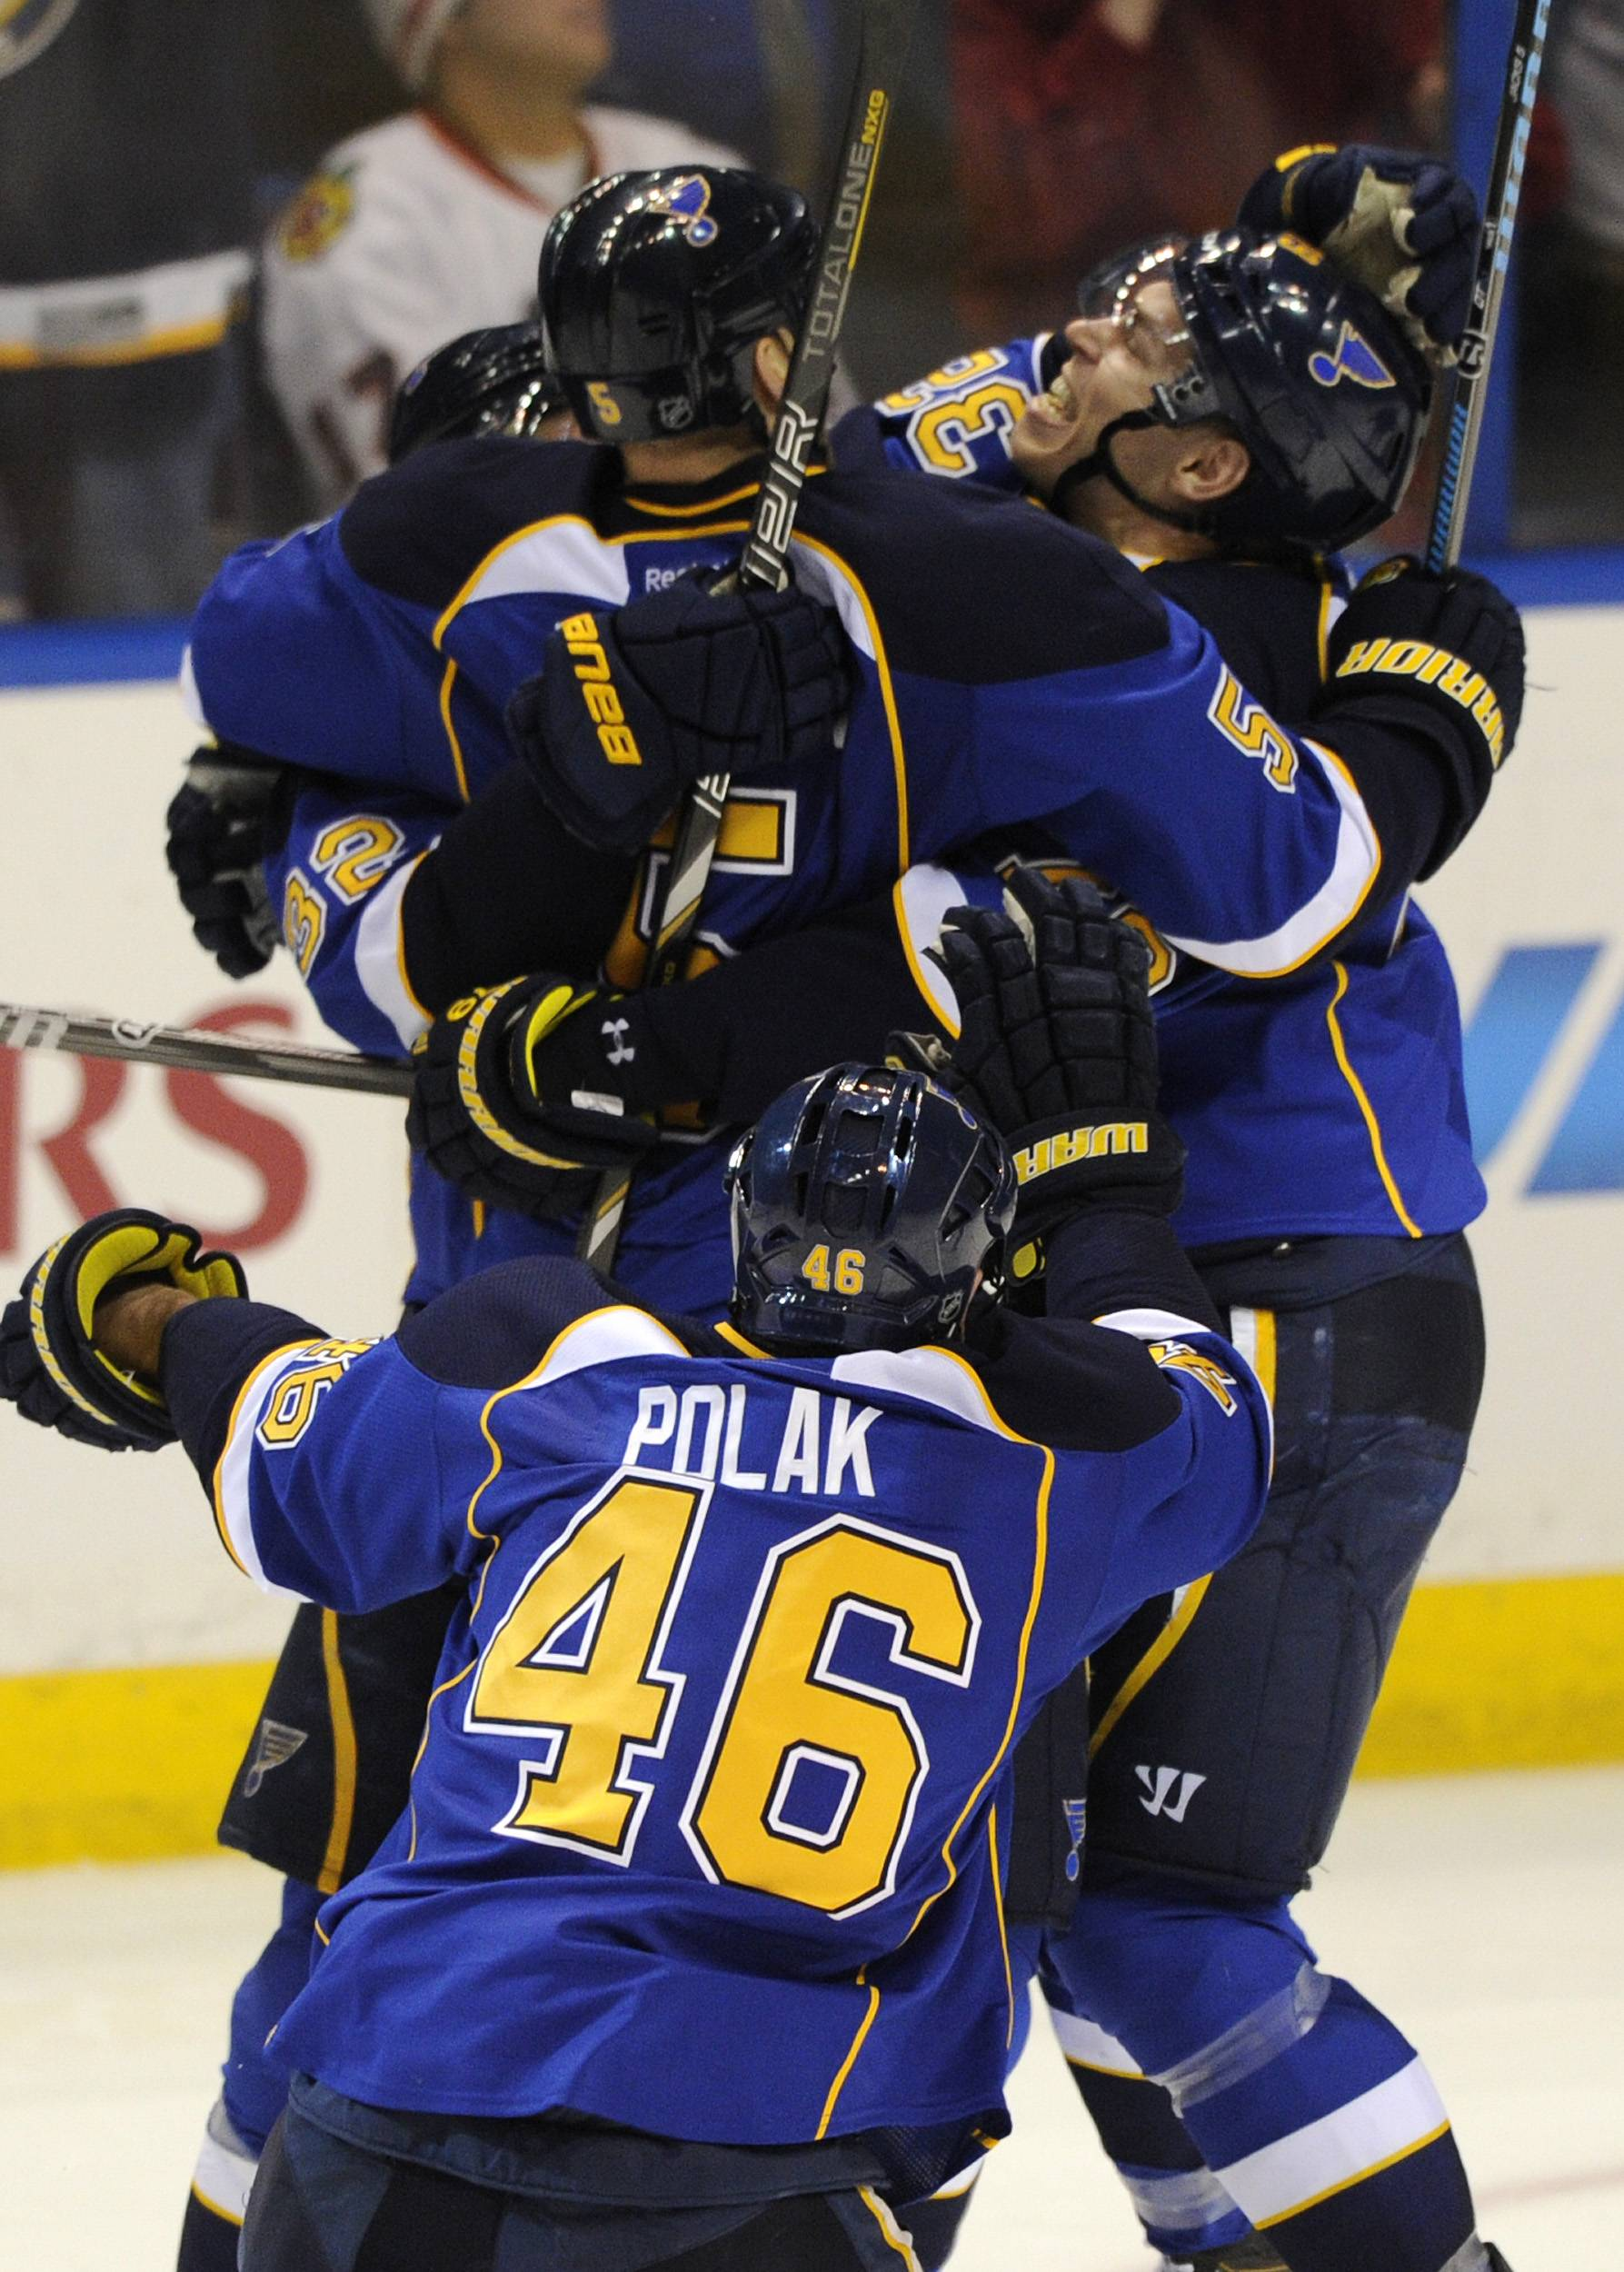 The Blues' Barret Jackman (5) is congratulated by teammates Adam Cracknell, right, and Roman Polak (46) after his game-winning goal against the Blackhawks during overtime in Game 2 on Saturday in St. Louis.